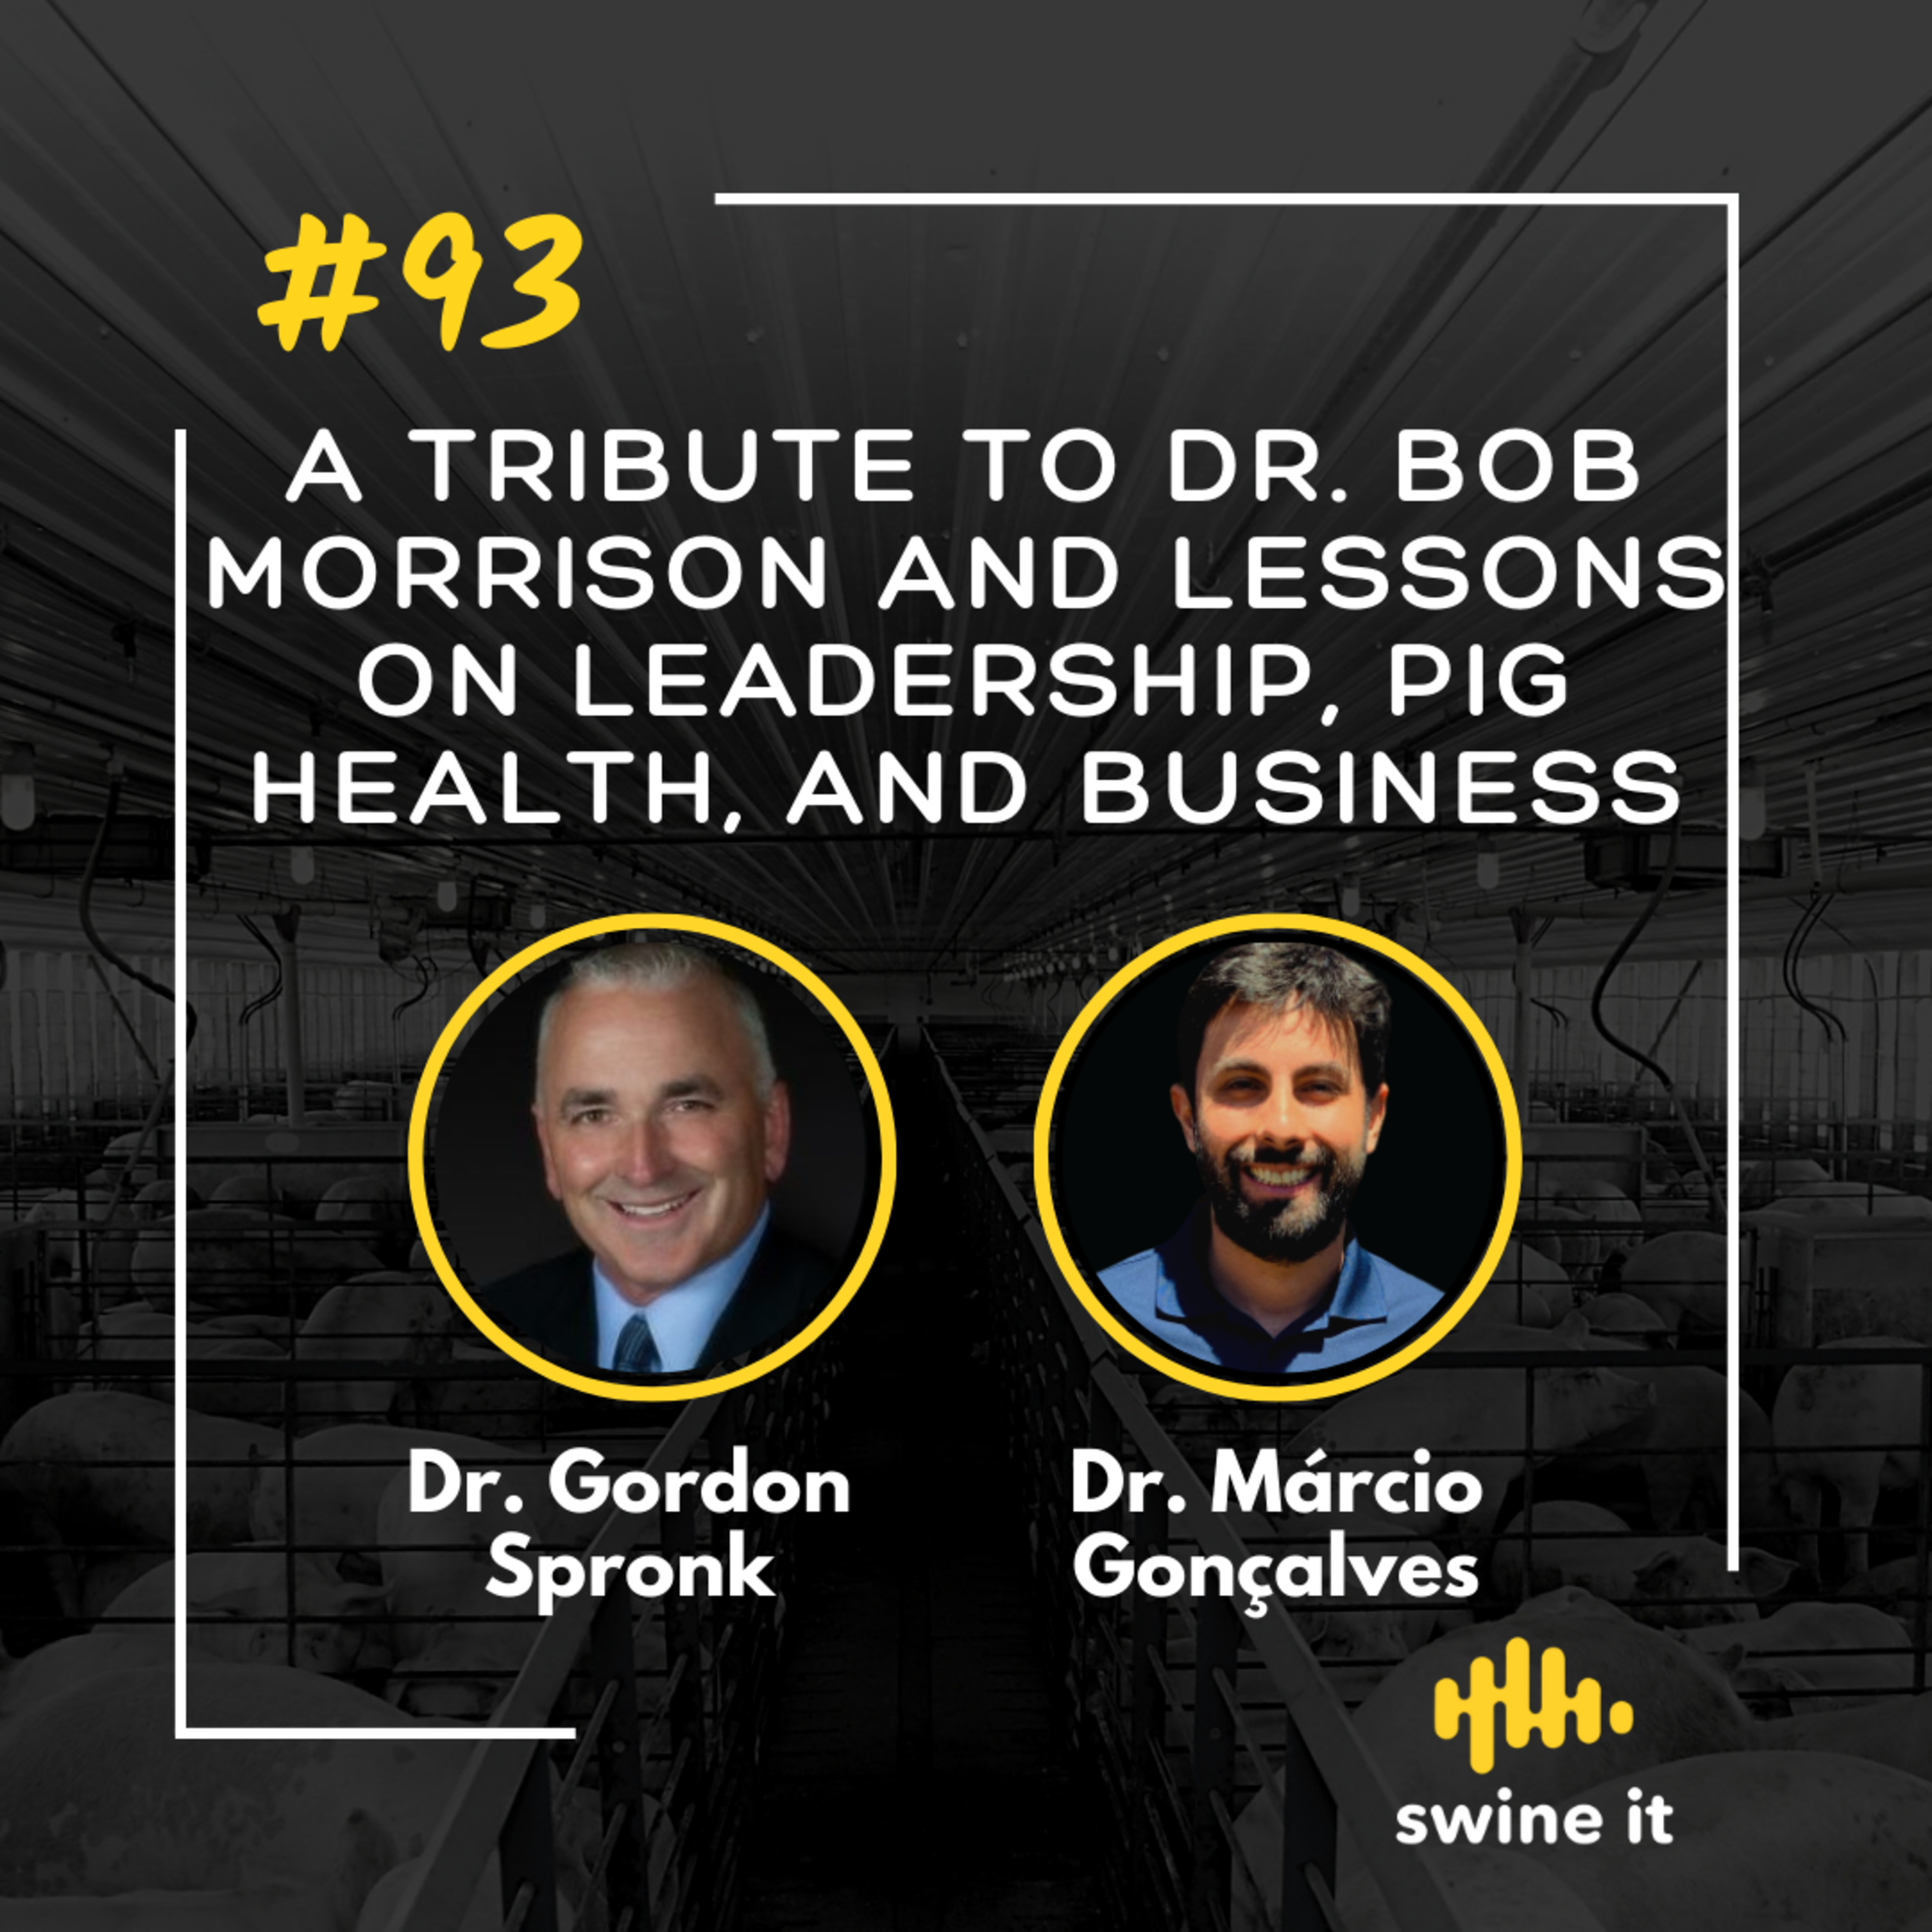 A tribute to Dr. Bob Morrison and lessons on leadership, pig health, and business - Dr. Gordon Spronk